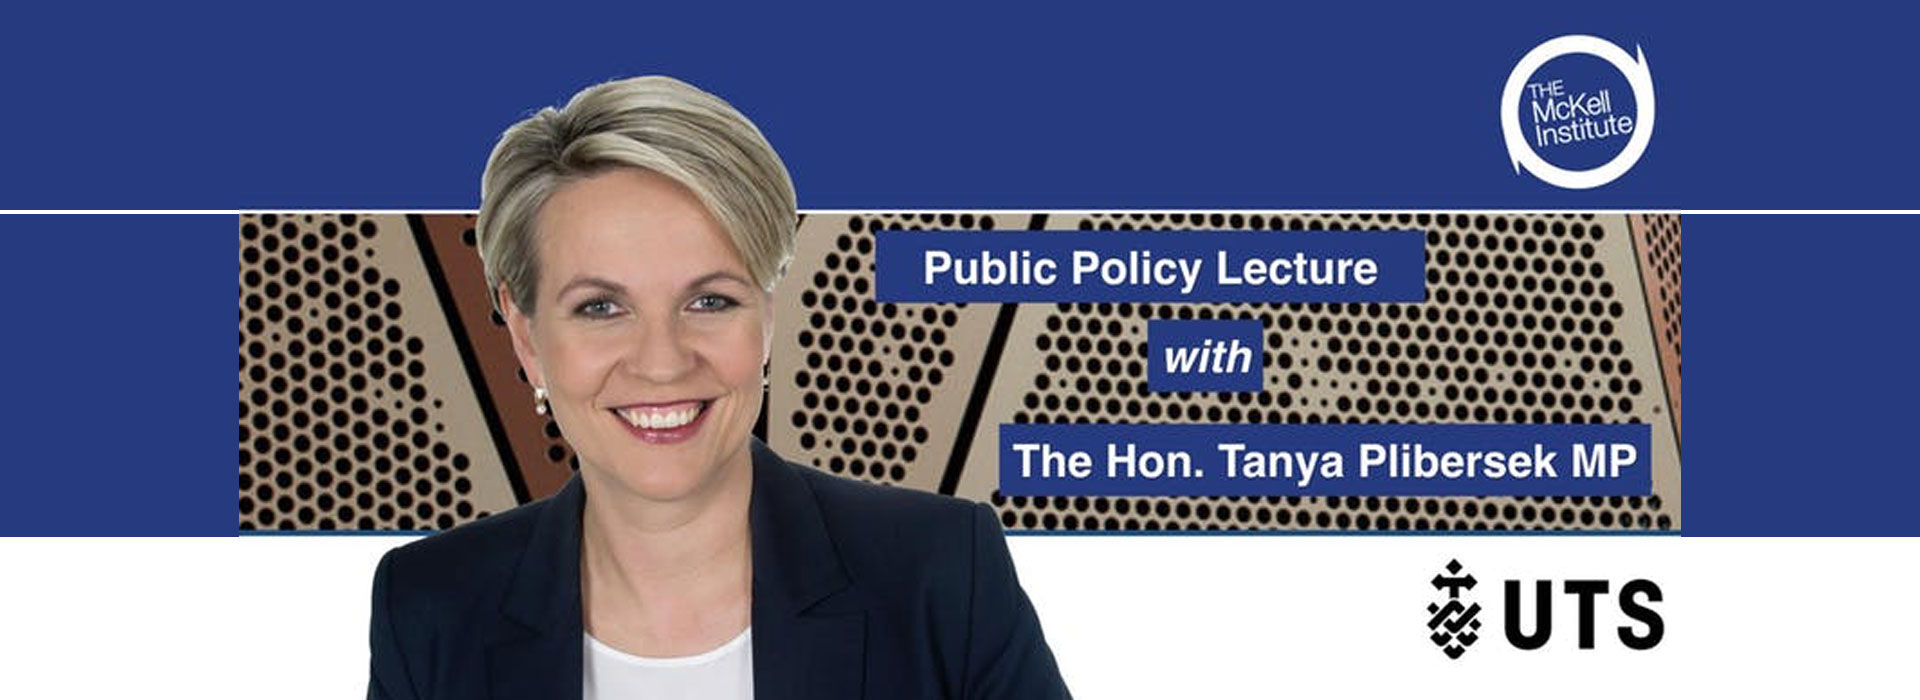 "Image of Tanya Plibersek MP with text ""Public Policy Lecture with Tanya Plibersek MP""."